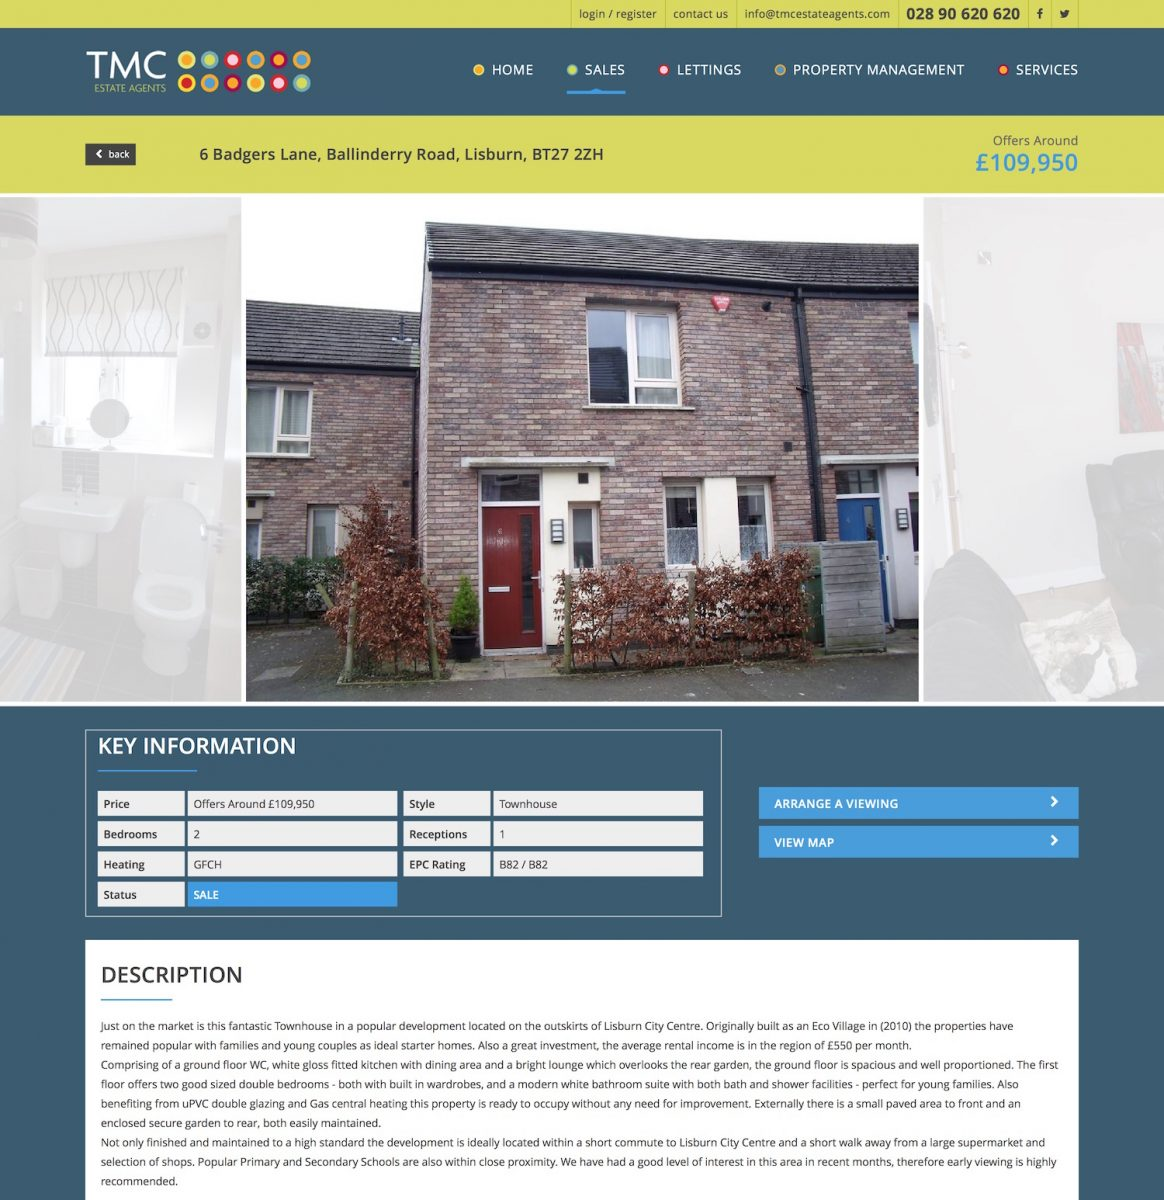 6 Badgers Lane, Ballinderry Road, Lisburn Property for sale at TMC estate agents Northern Ireland